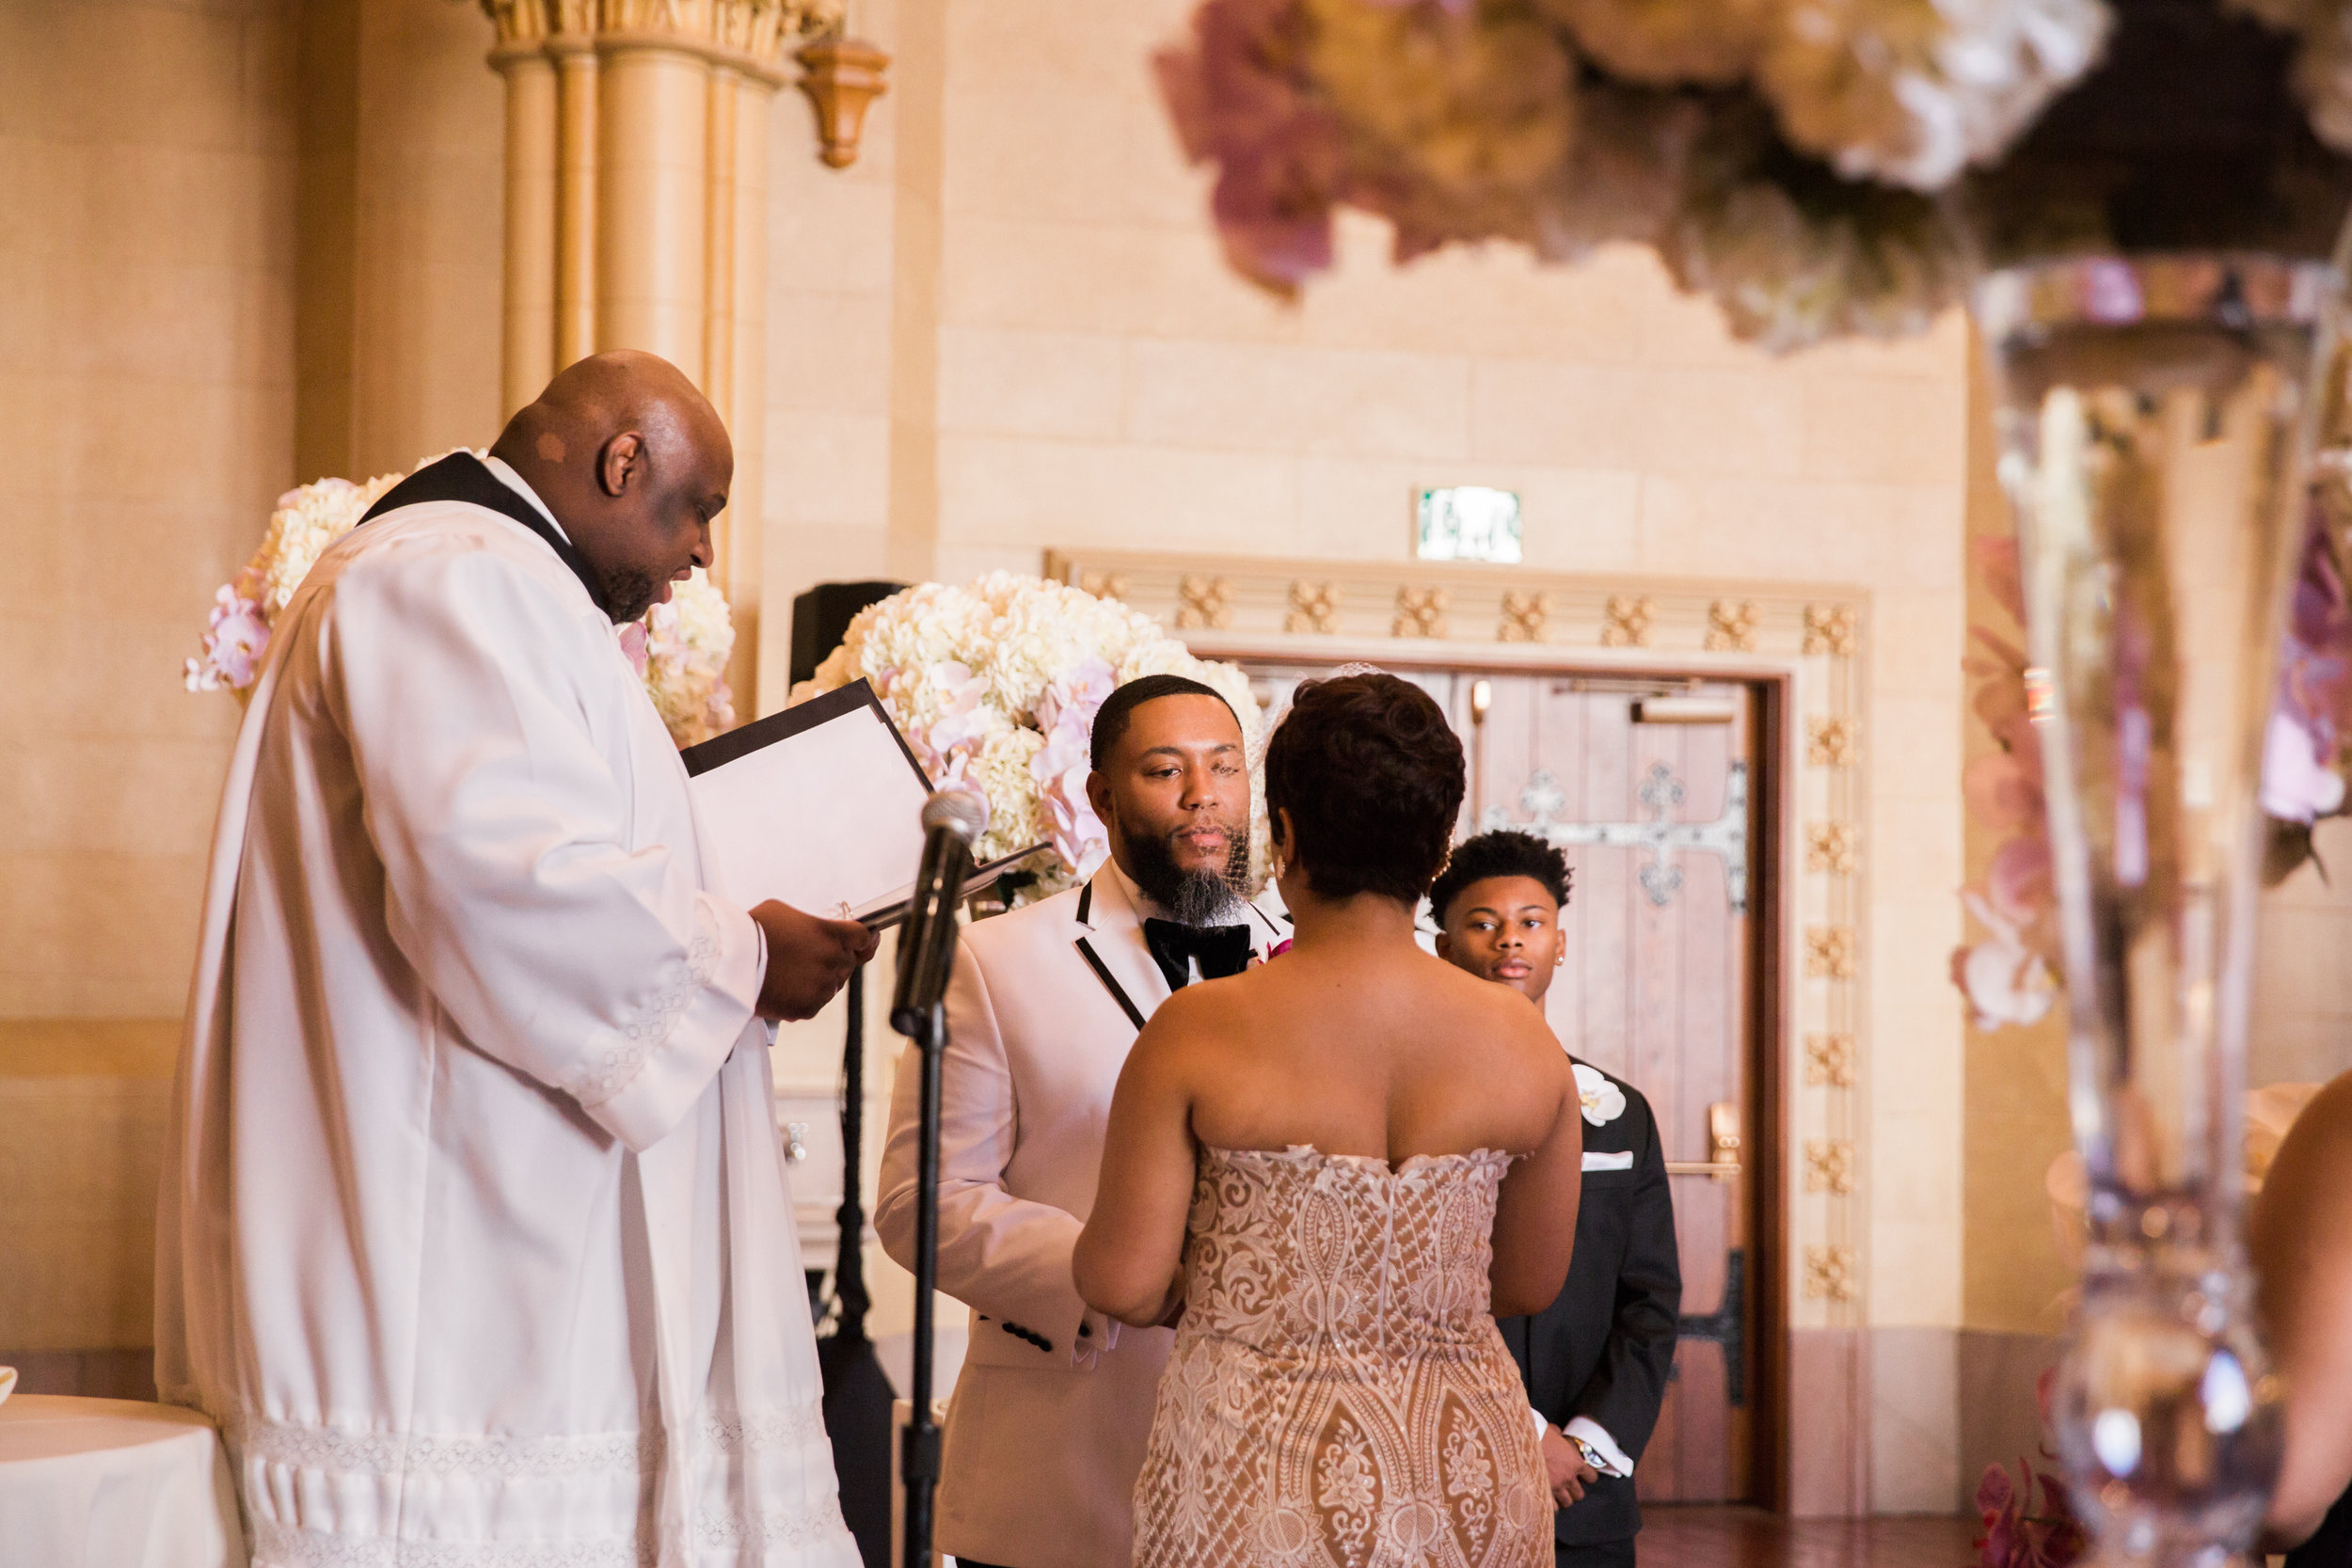 Best Classic Black Bride at The Grand Baltimore Maryland Husband and Wife Wedding Photographers Megapixels Media (46 of 98).jpg